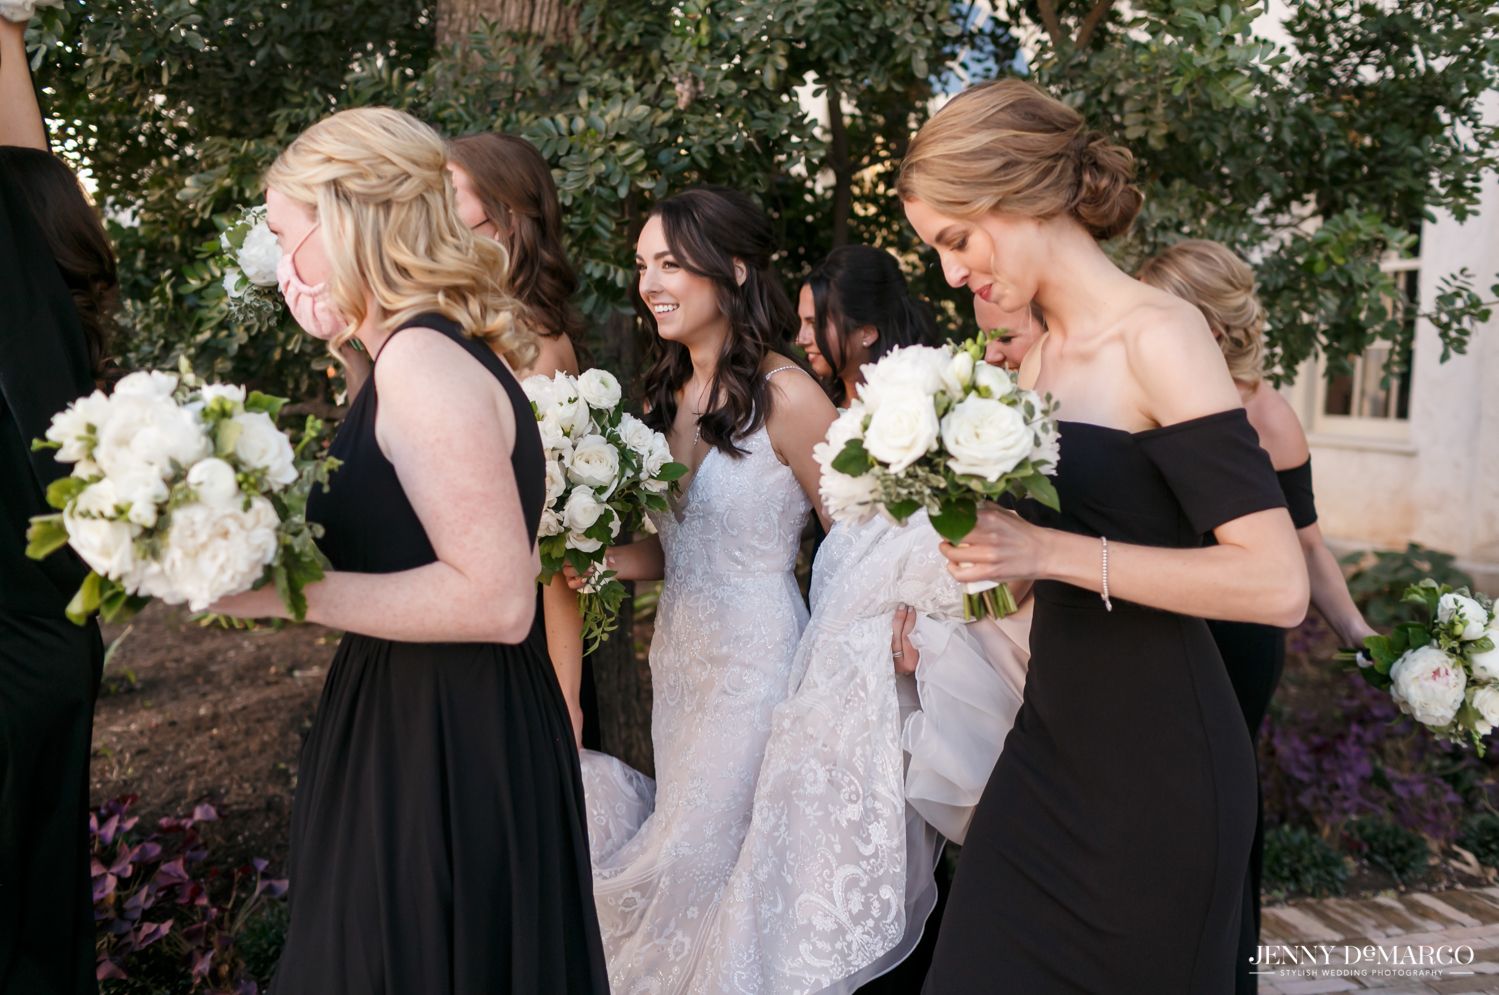 bridesmaids walking with the bride and hold the train of her dress